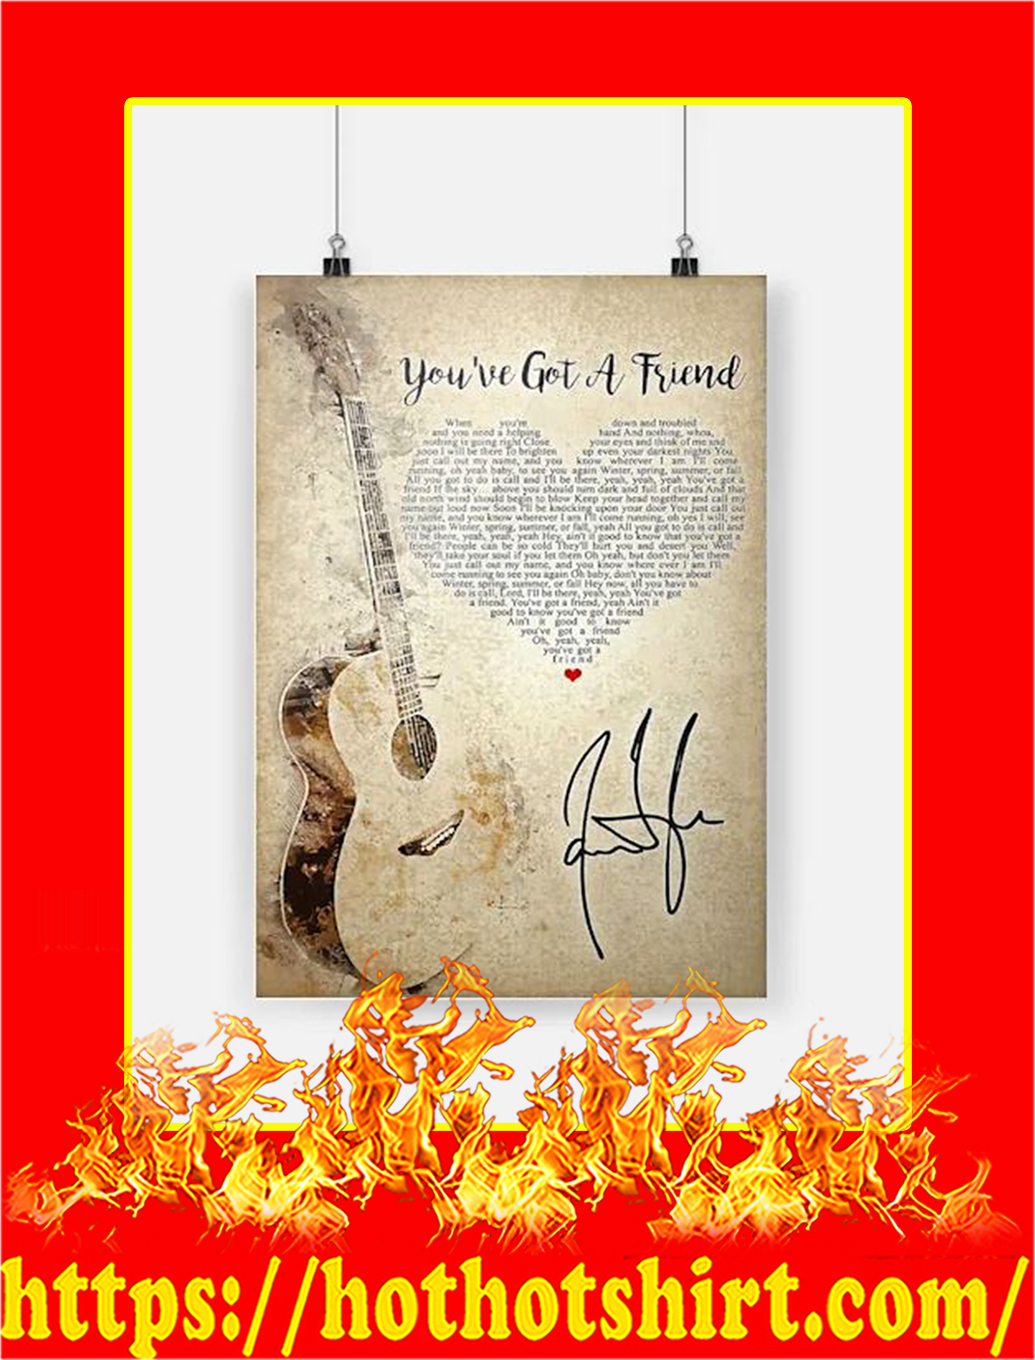 You've Got A Friend Poster - A3